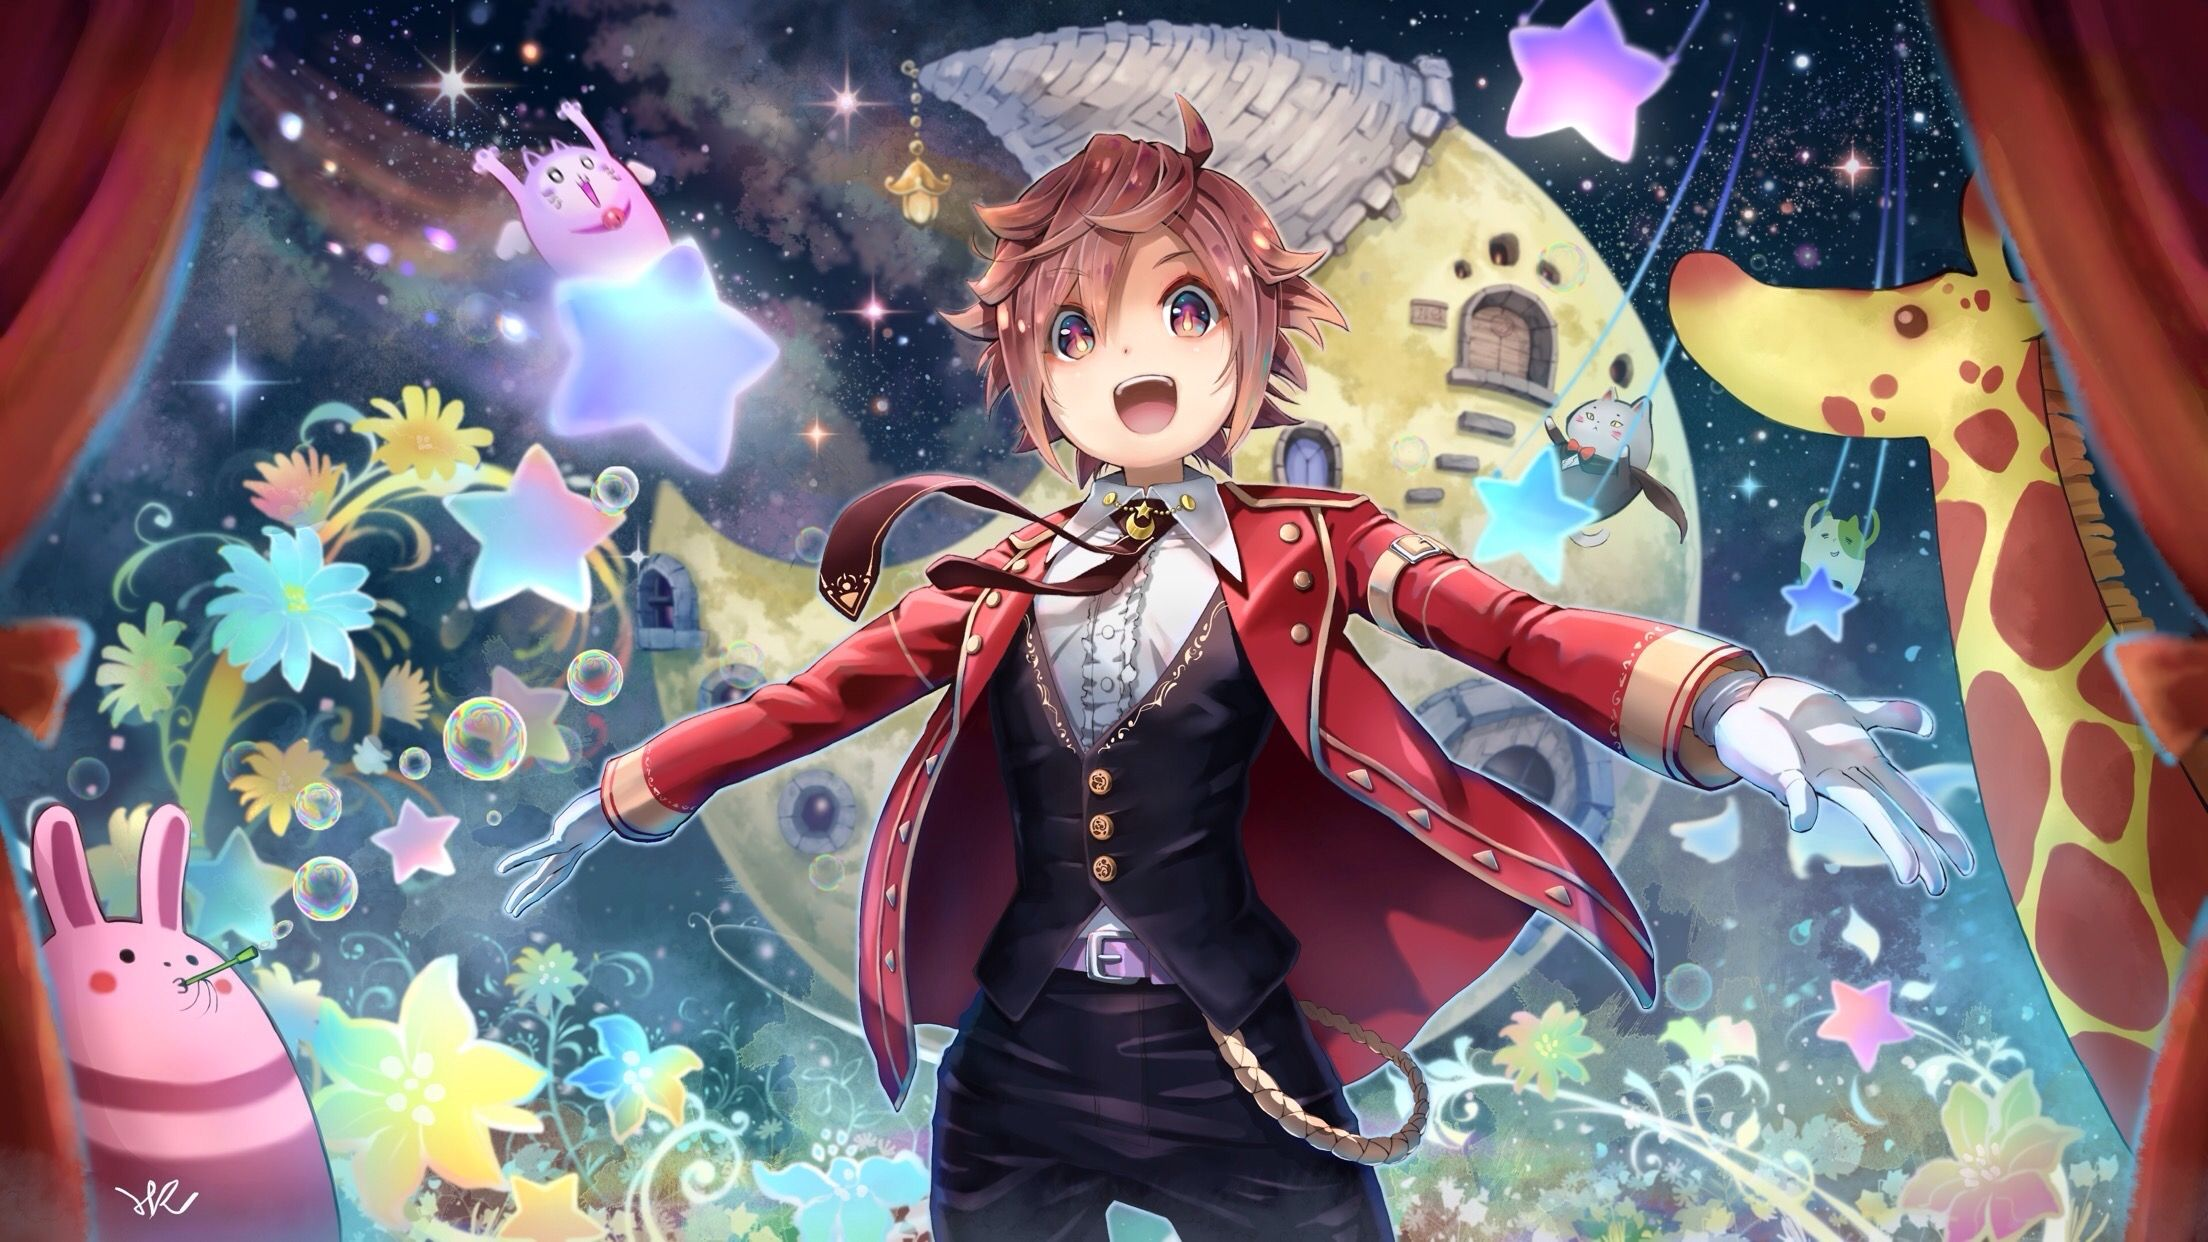 Pin by Alfred Markardt on Wallpapers Arts Anime, Anime